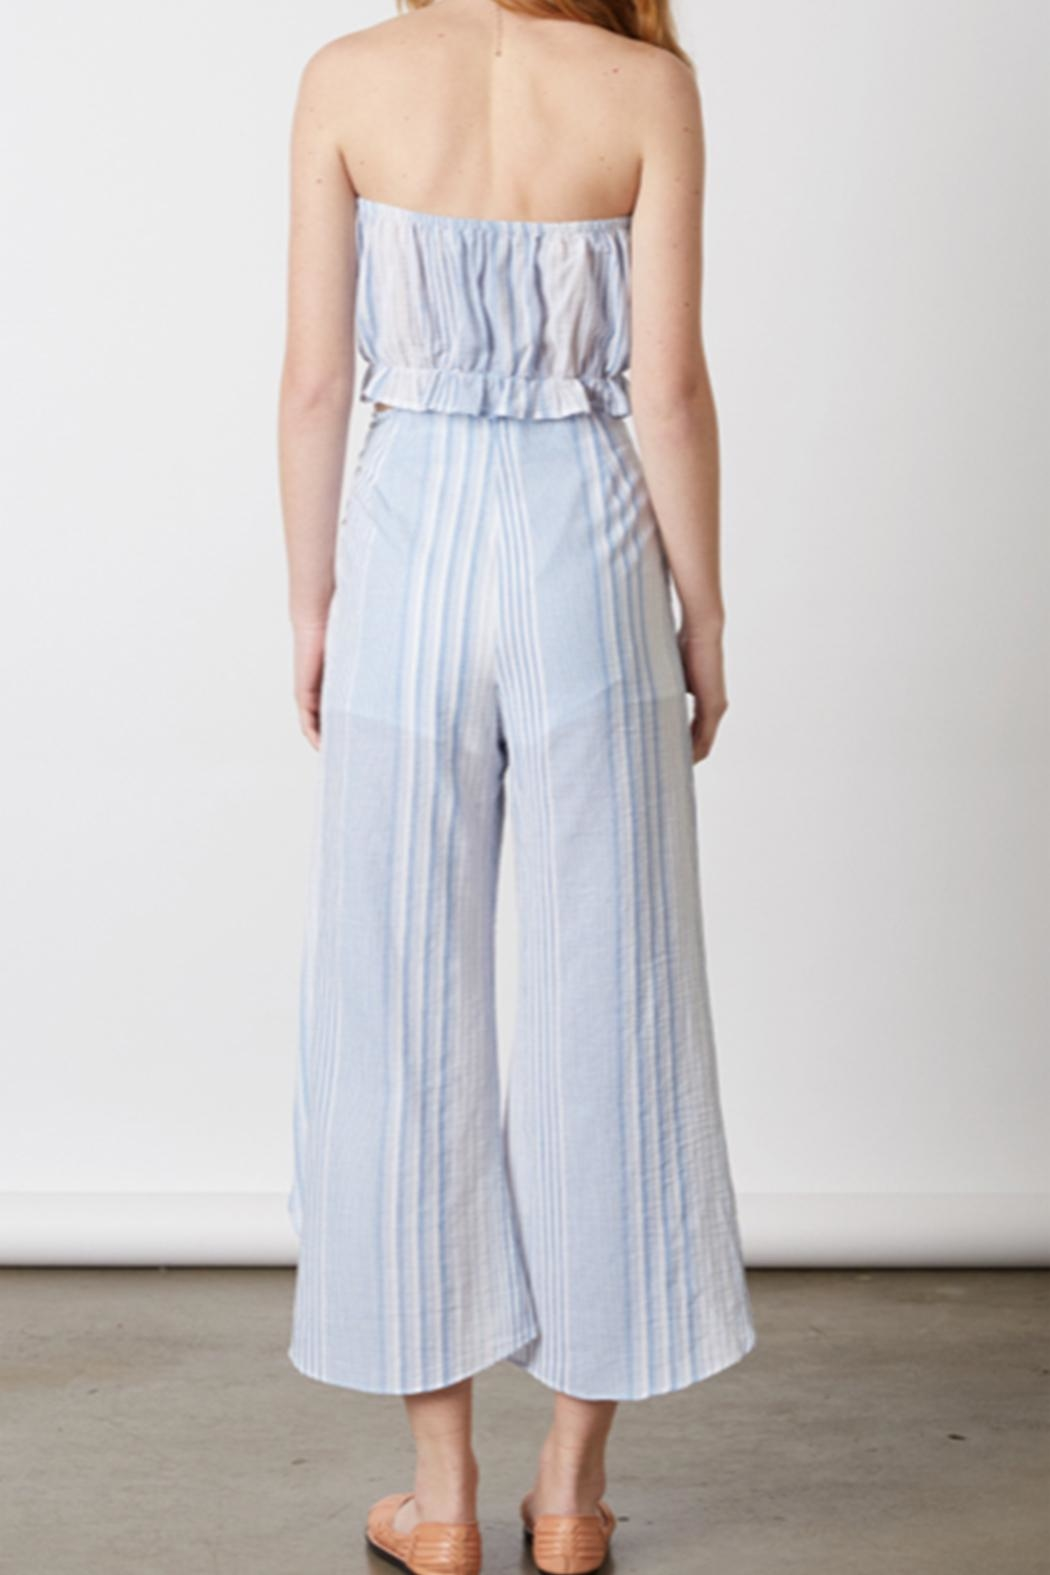 Cotton Candy Chambray Two Piece - Back Cropped Image